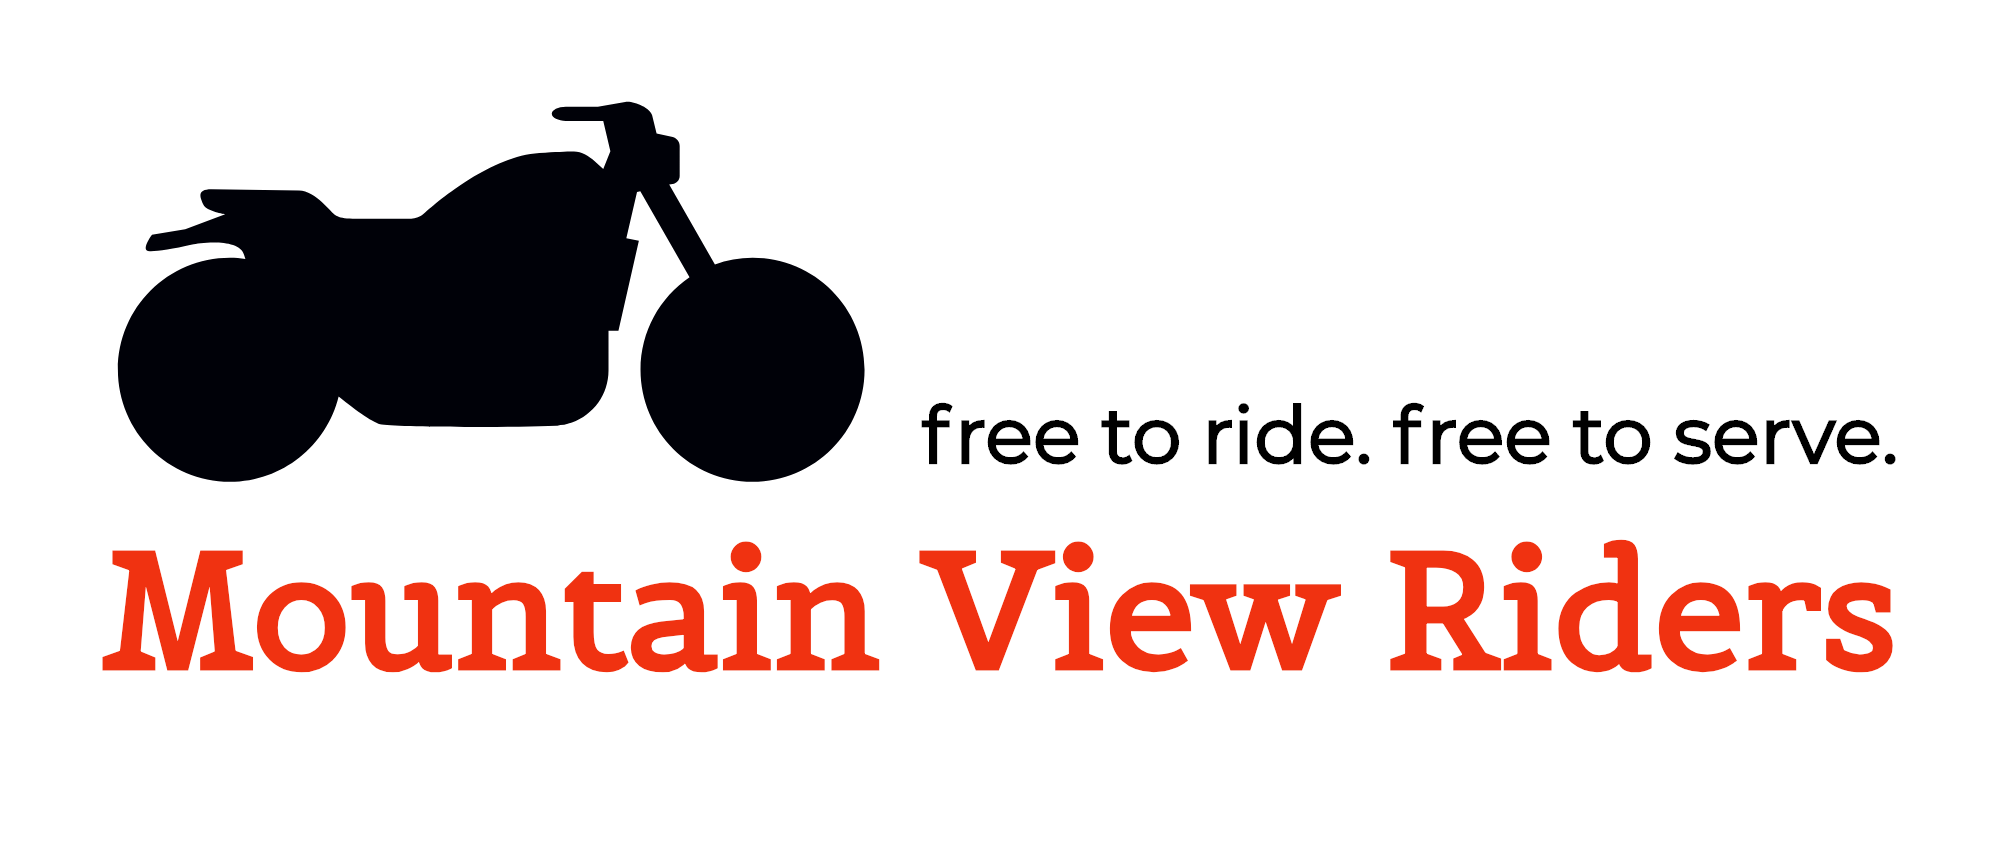 Mountain View Riders-logo (3).png